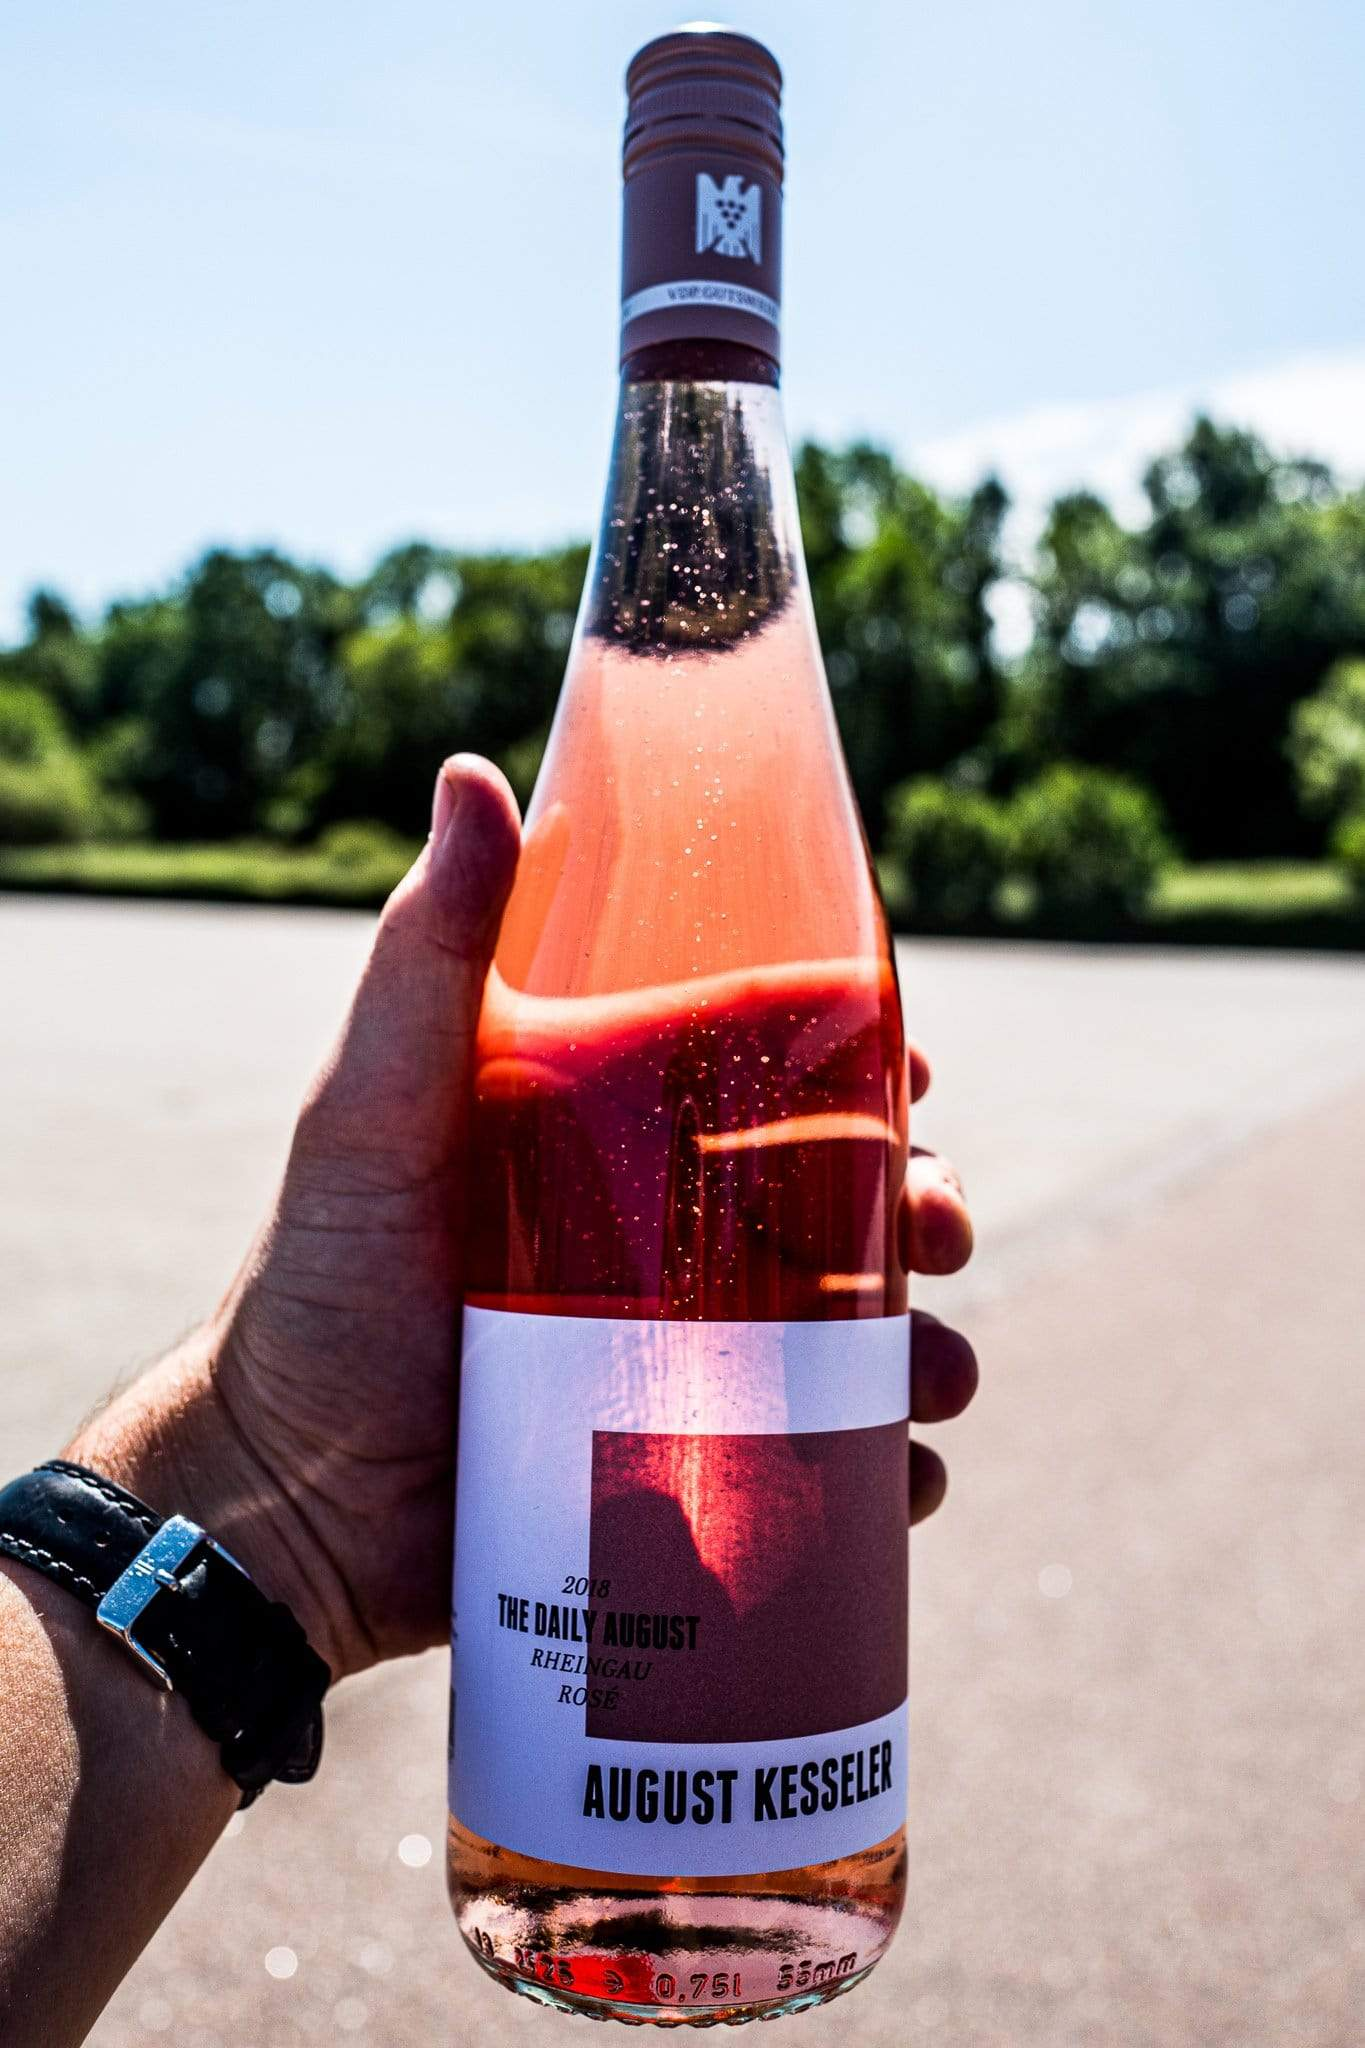 Image of   August Kesseler 2018 The Daily August Rheingau Rosé